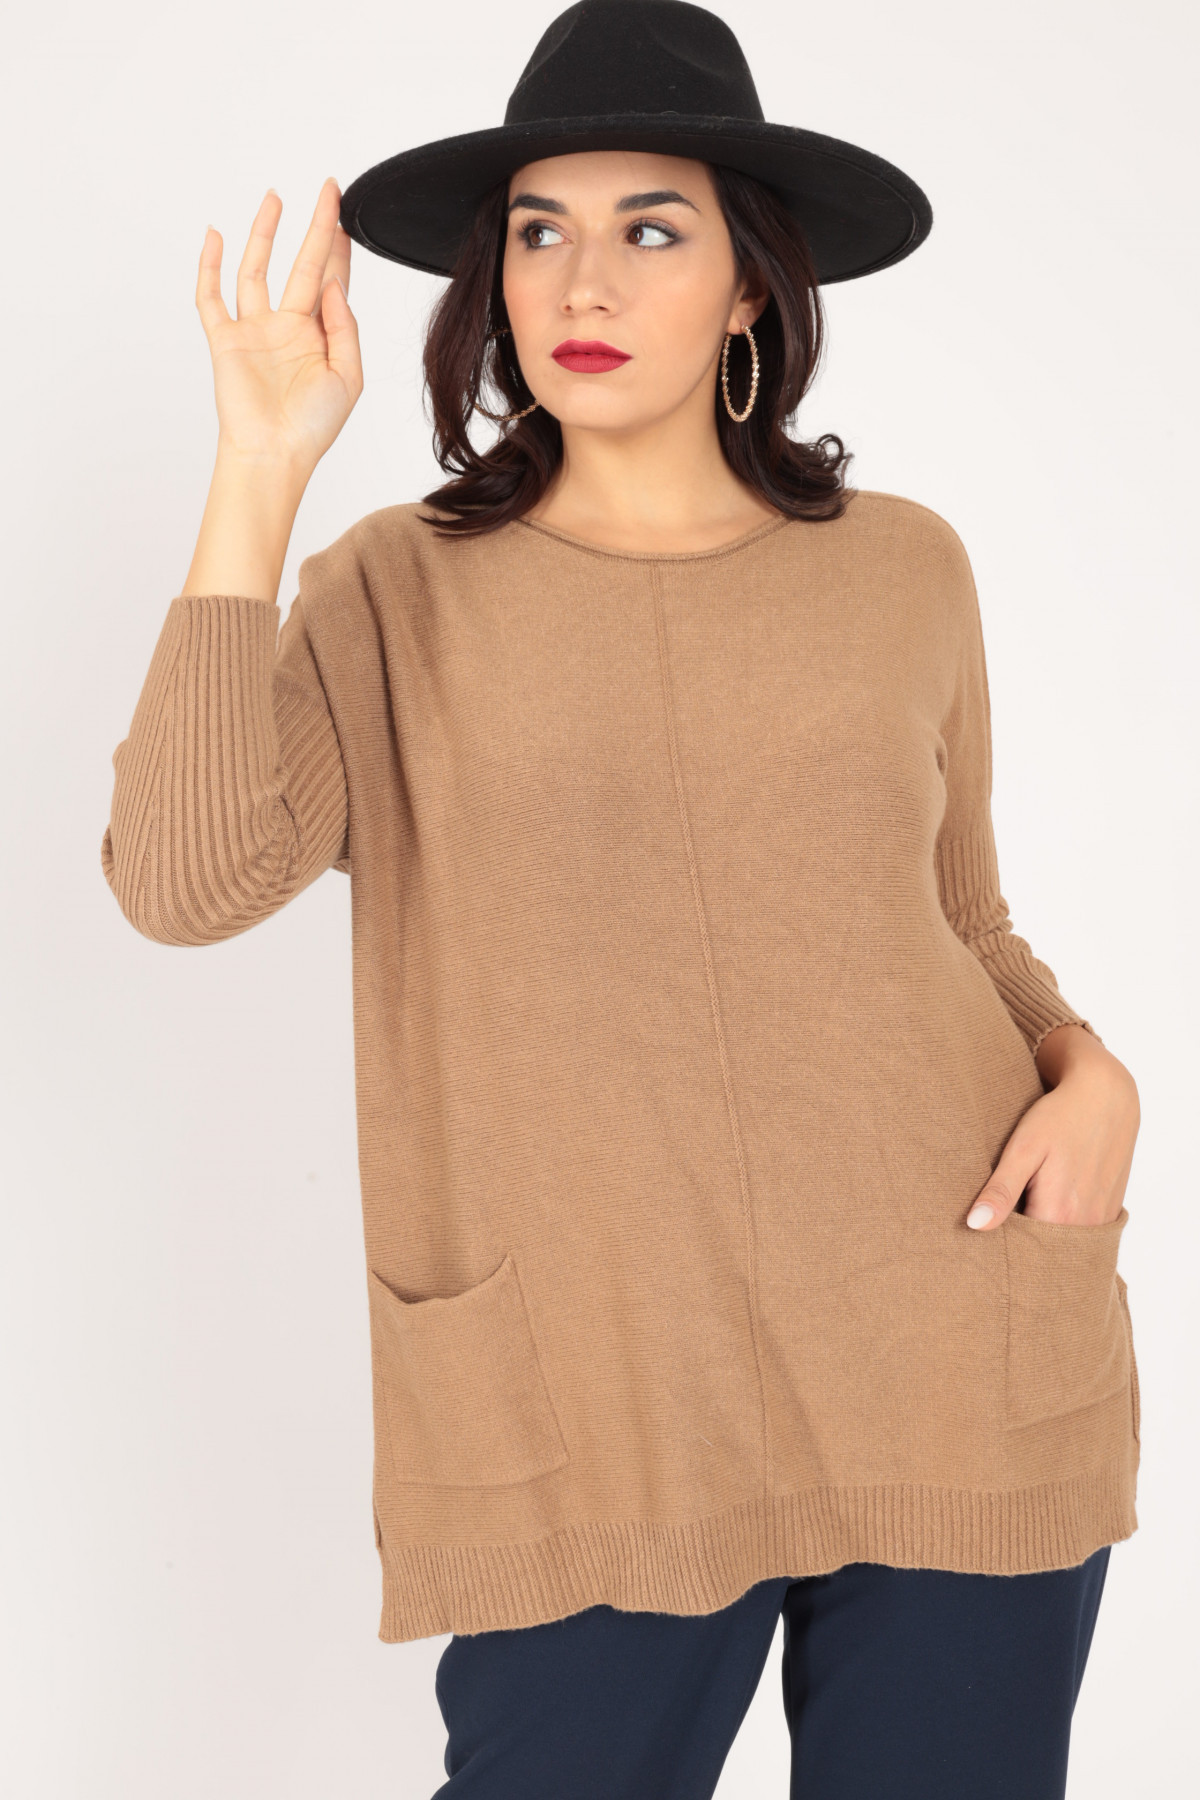 Pullover with pockets and slits on the bottom